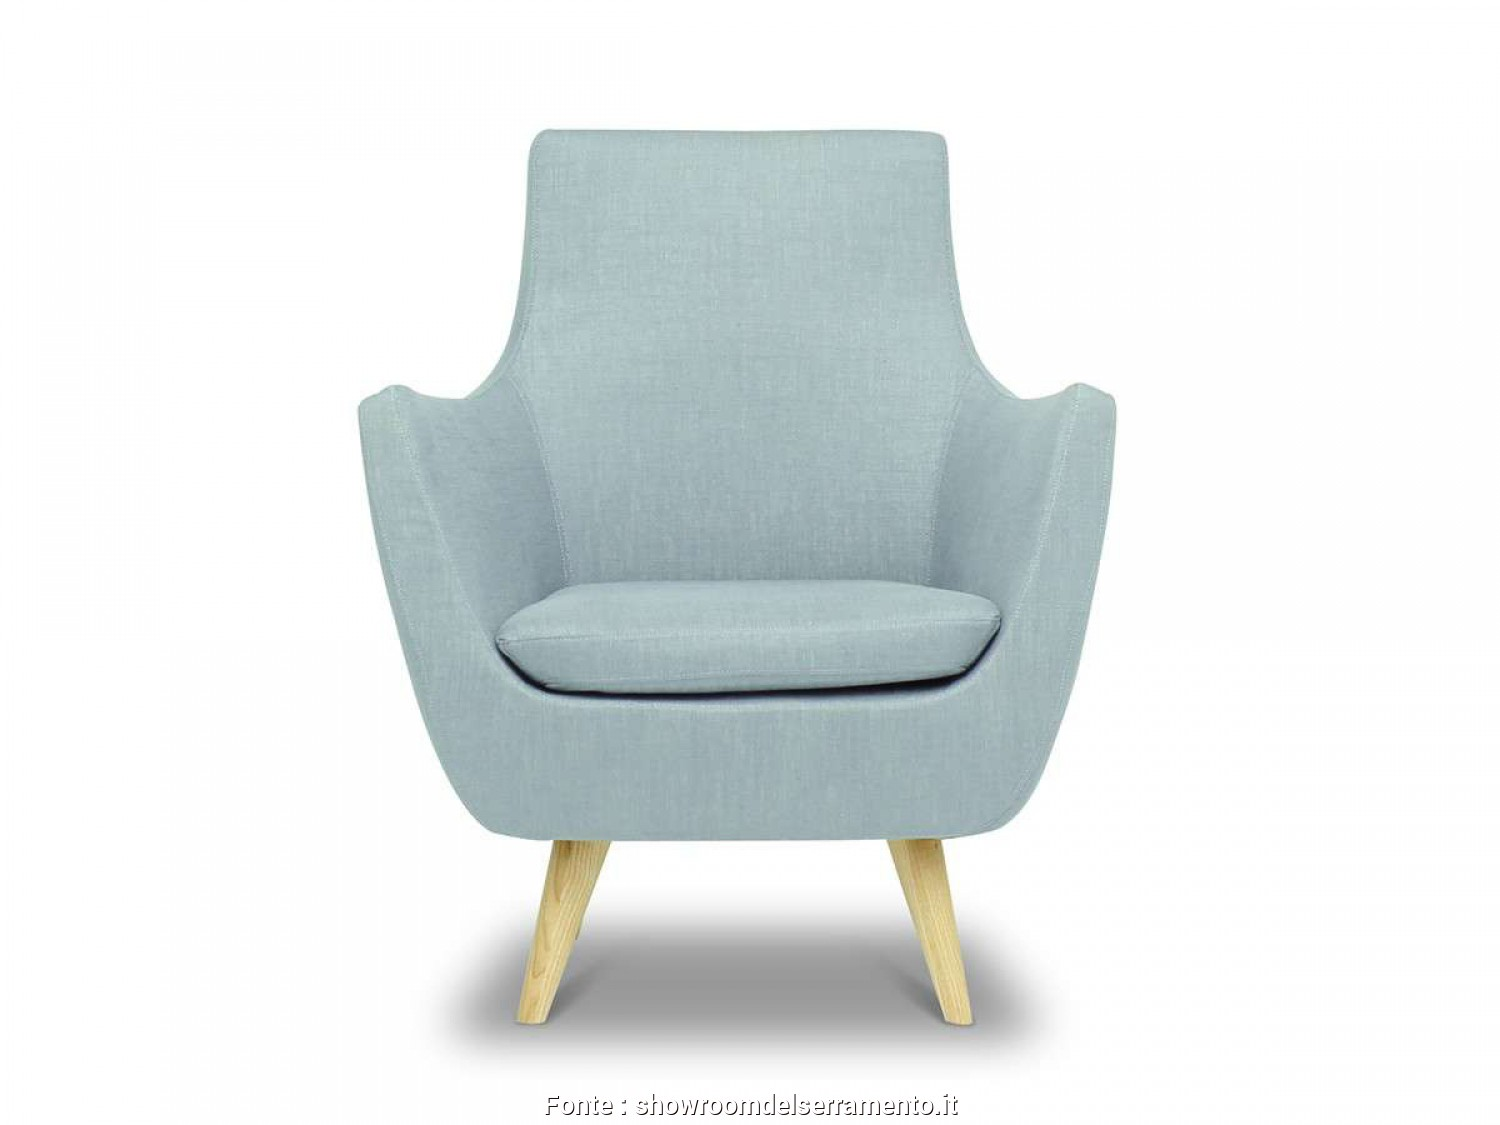 For Congress Keever Soggiorno Poltroncine Ikea Classy 5 fgby76